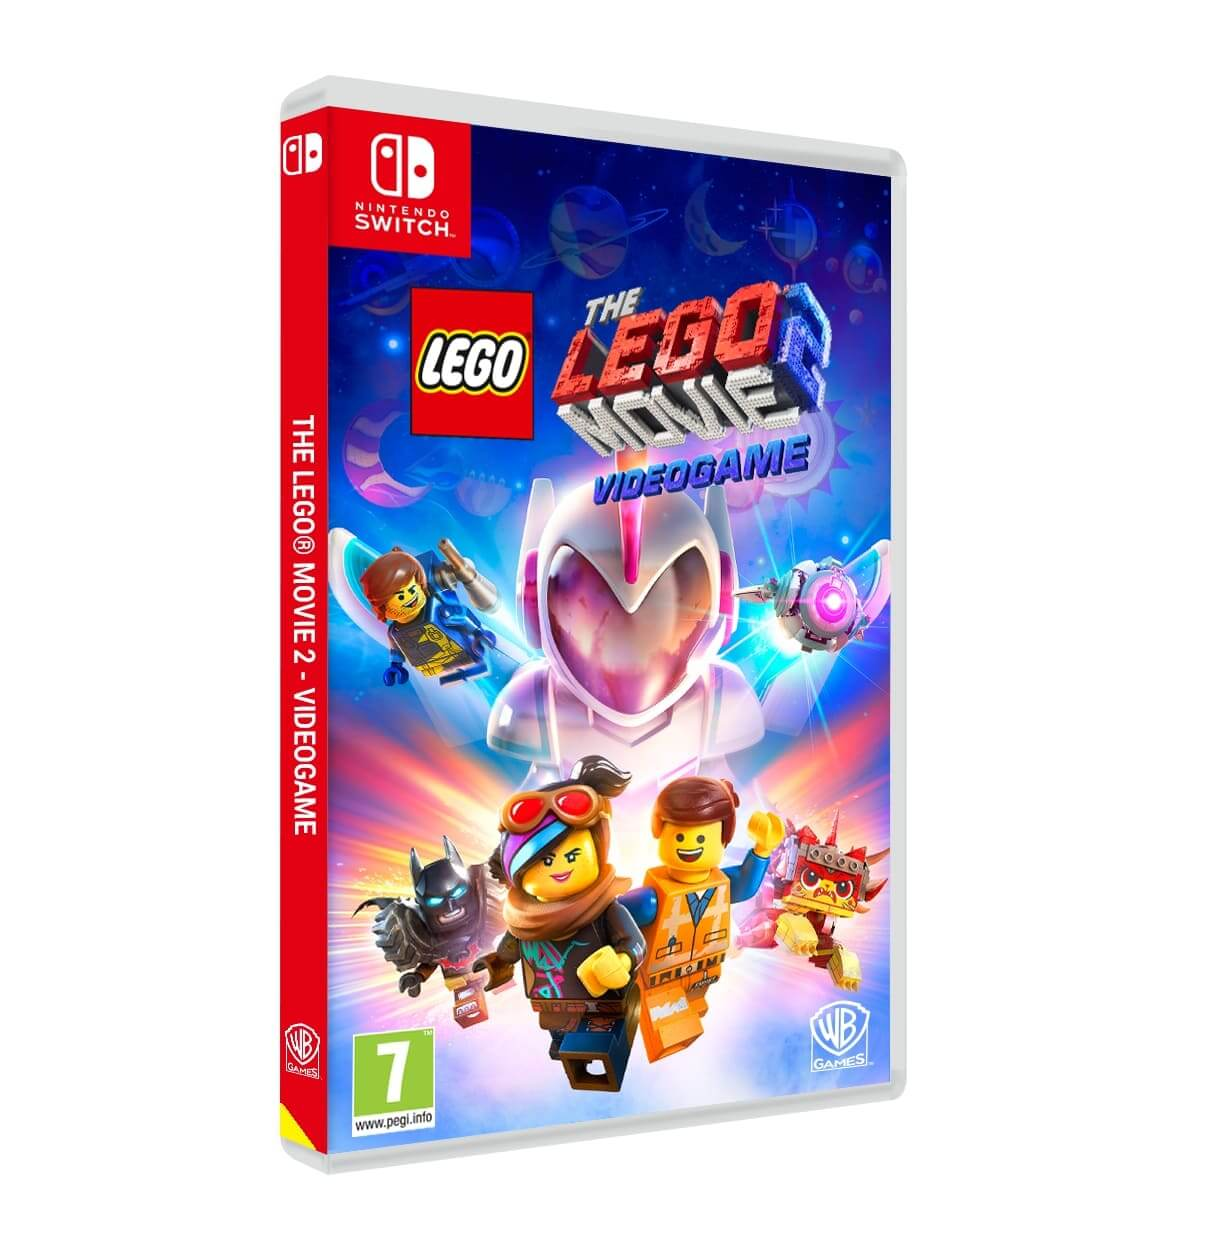 LEGO MOVIE 2 - NINTENDO SWITCH